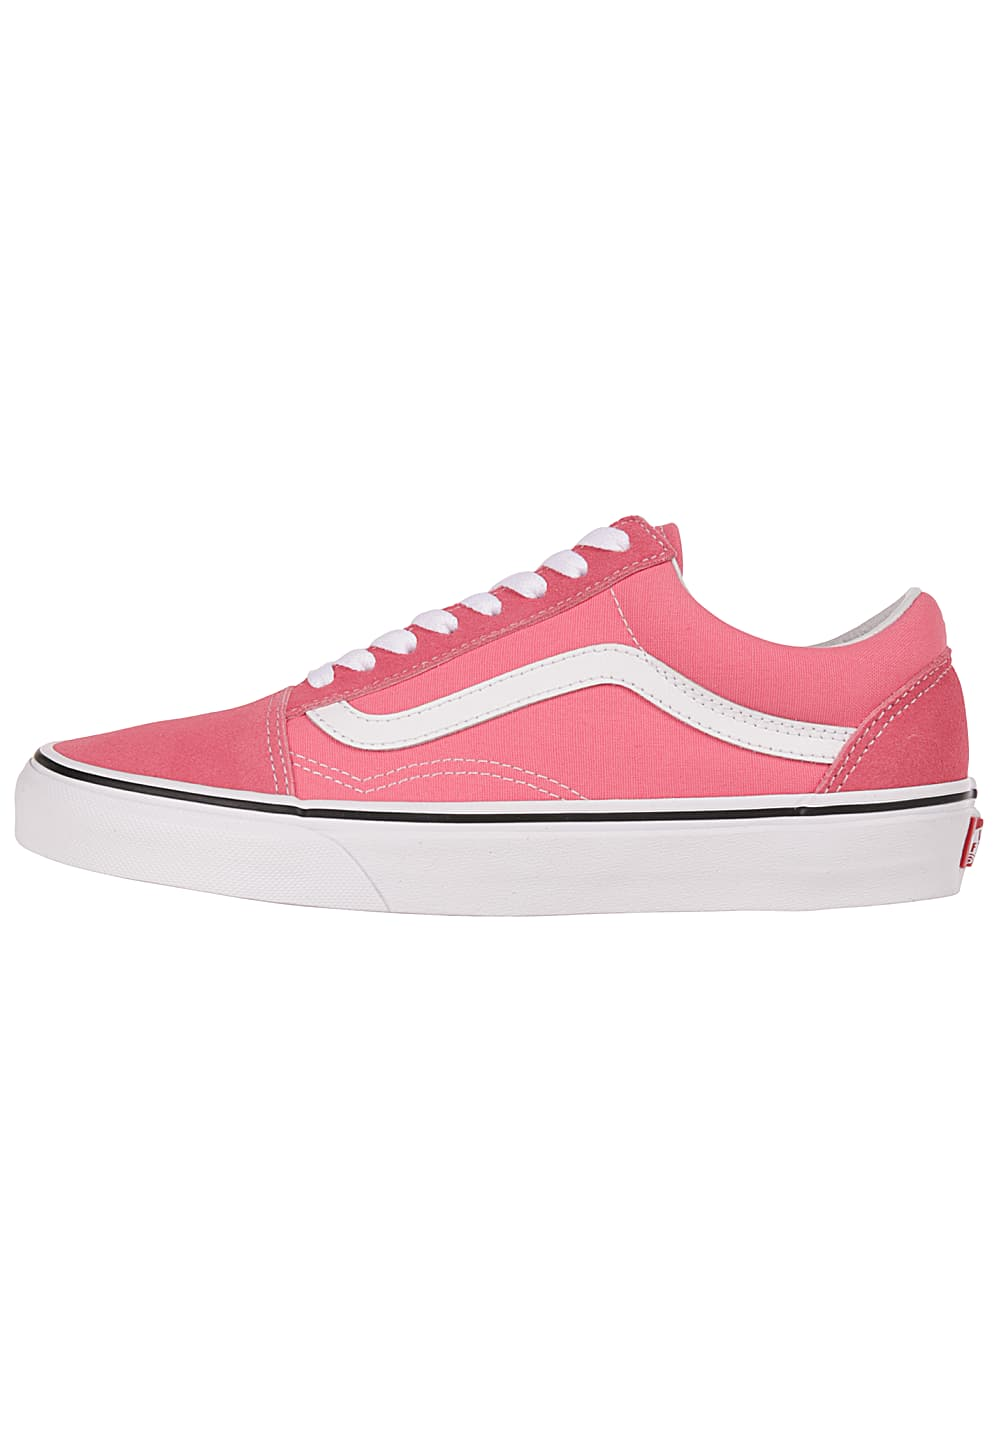 Vans Old Skool - Zapatillas para Mujeres - Rosa - Planet Sports ebbe2d69224